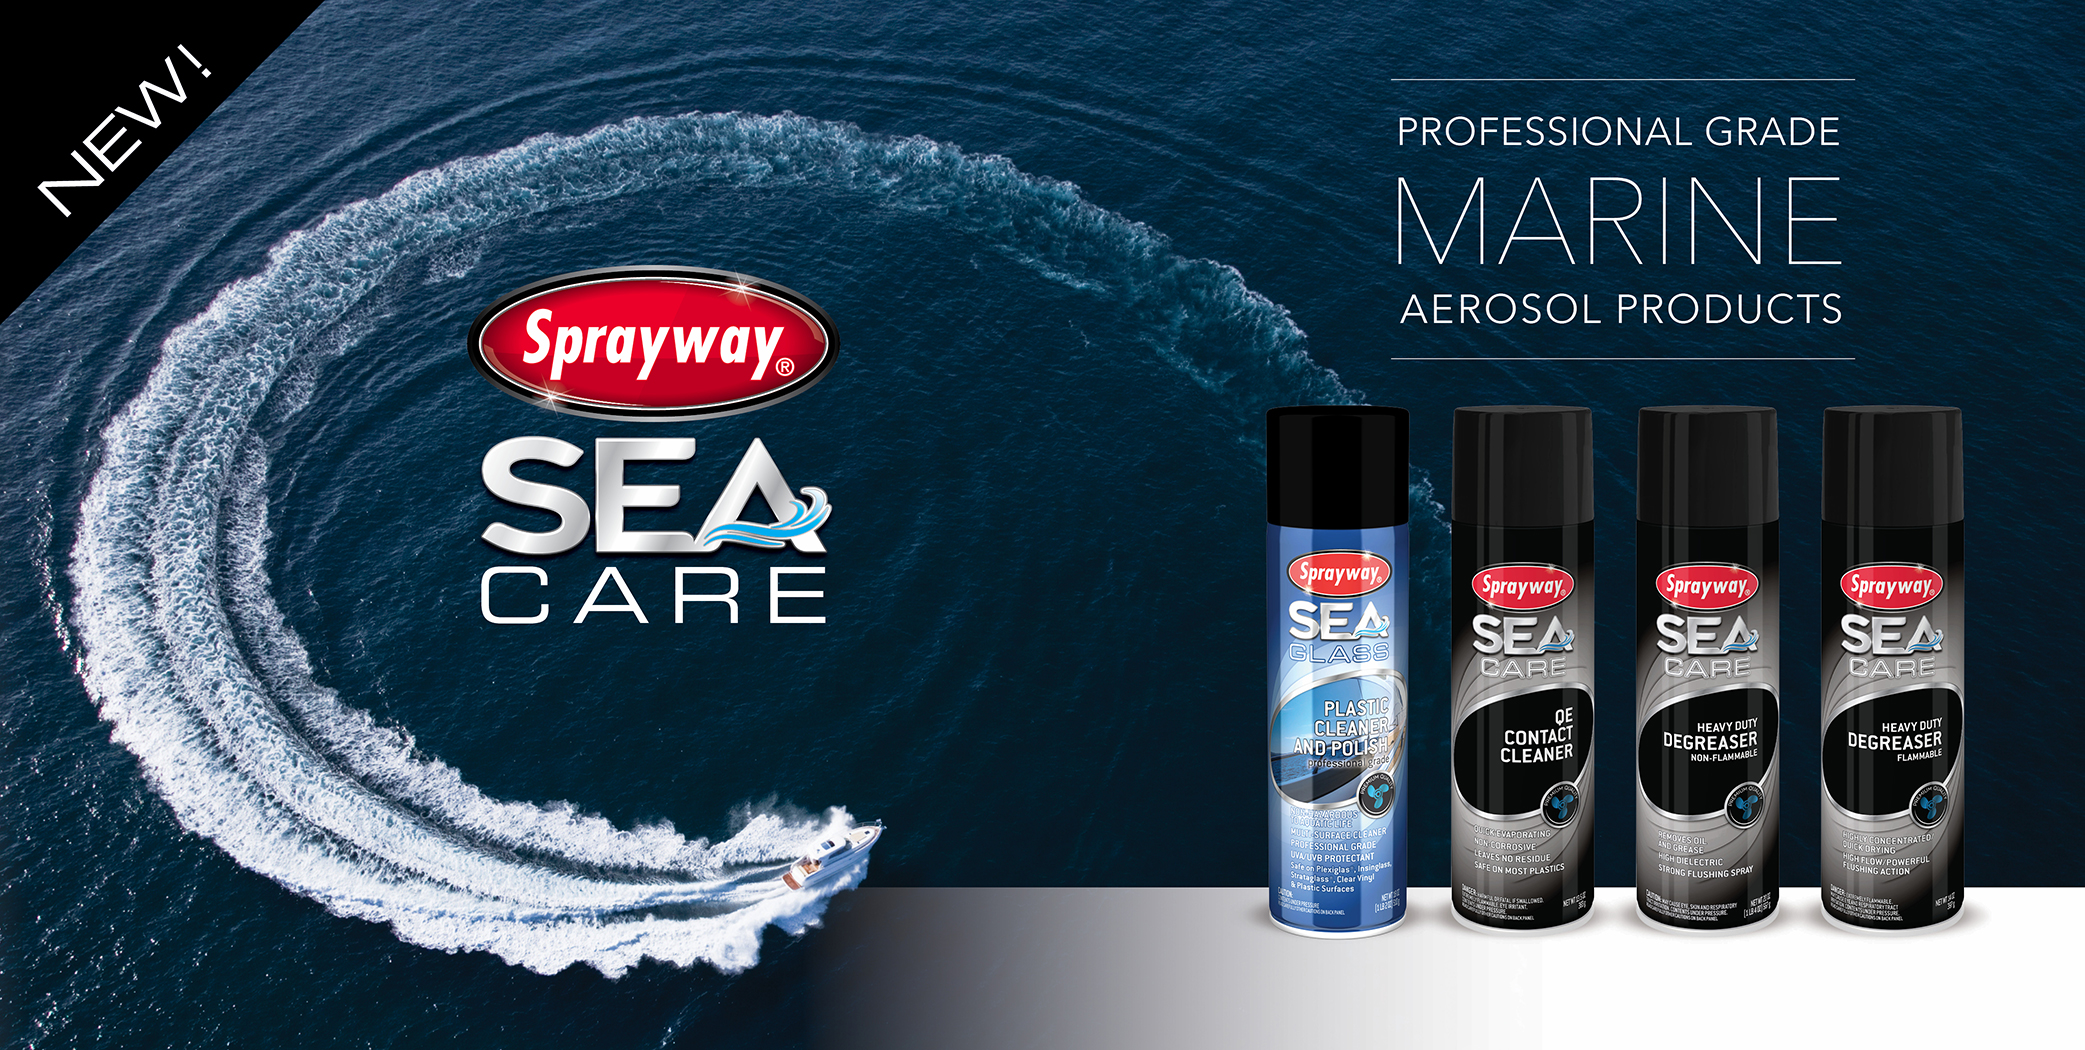 Sea Care Line by Sprayway